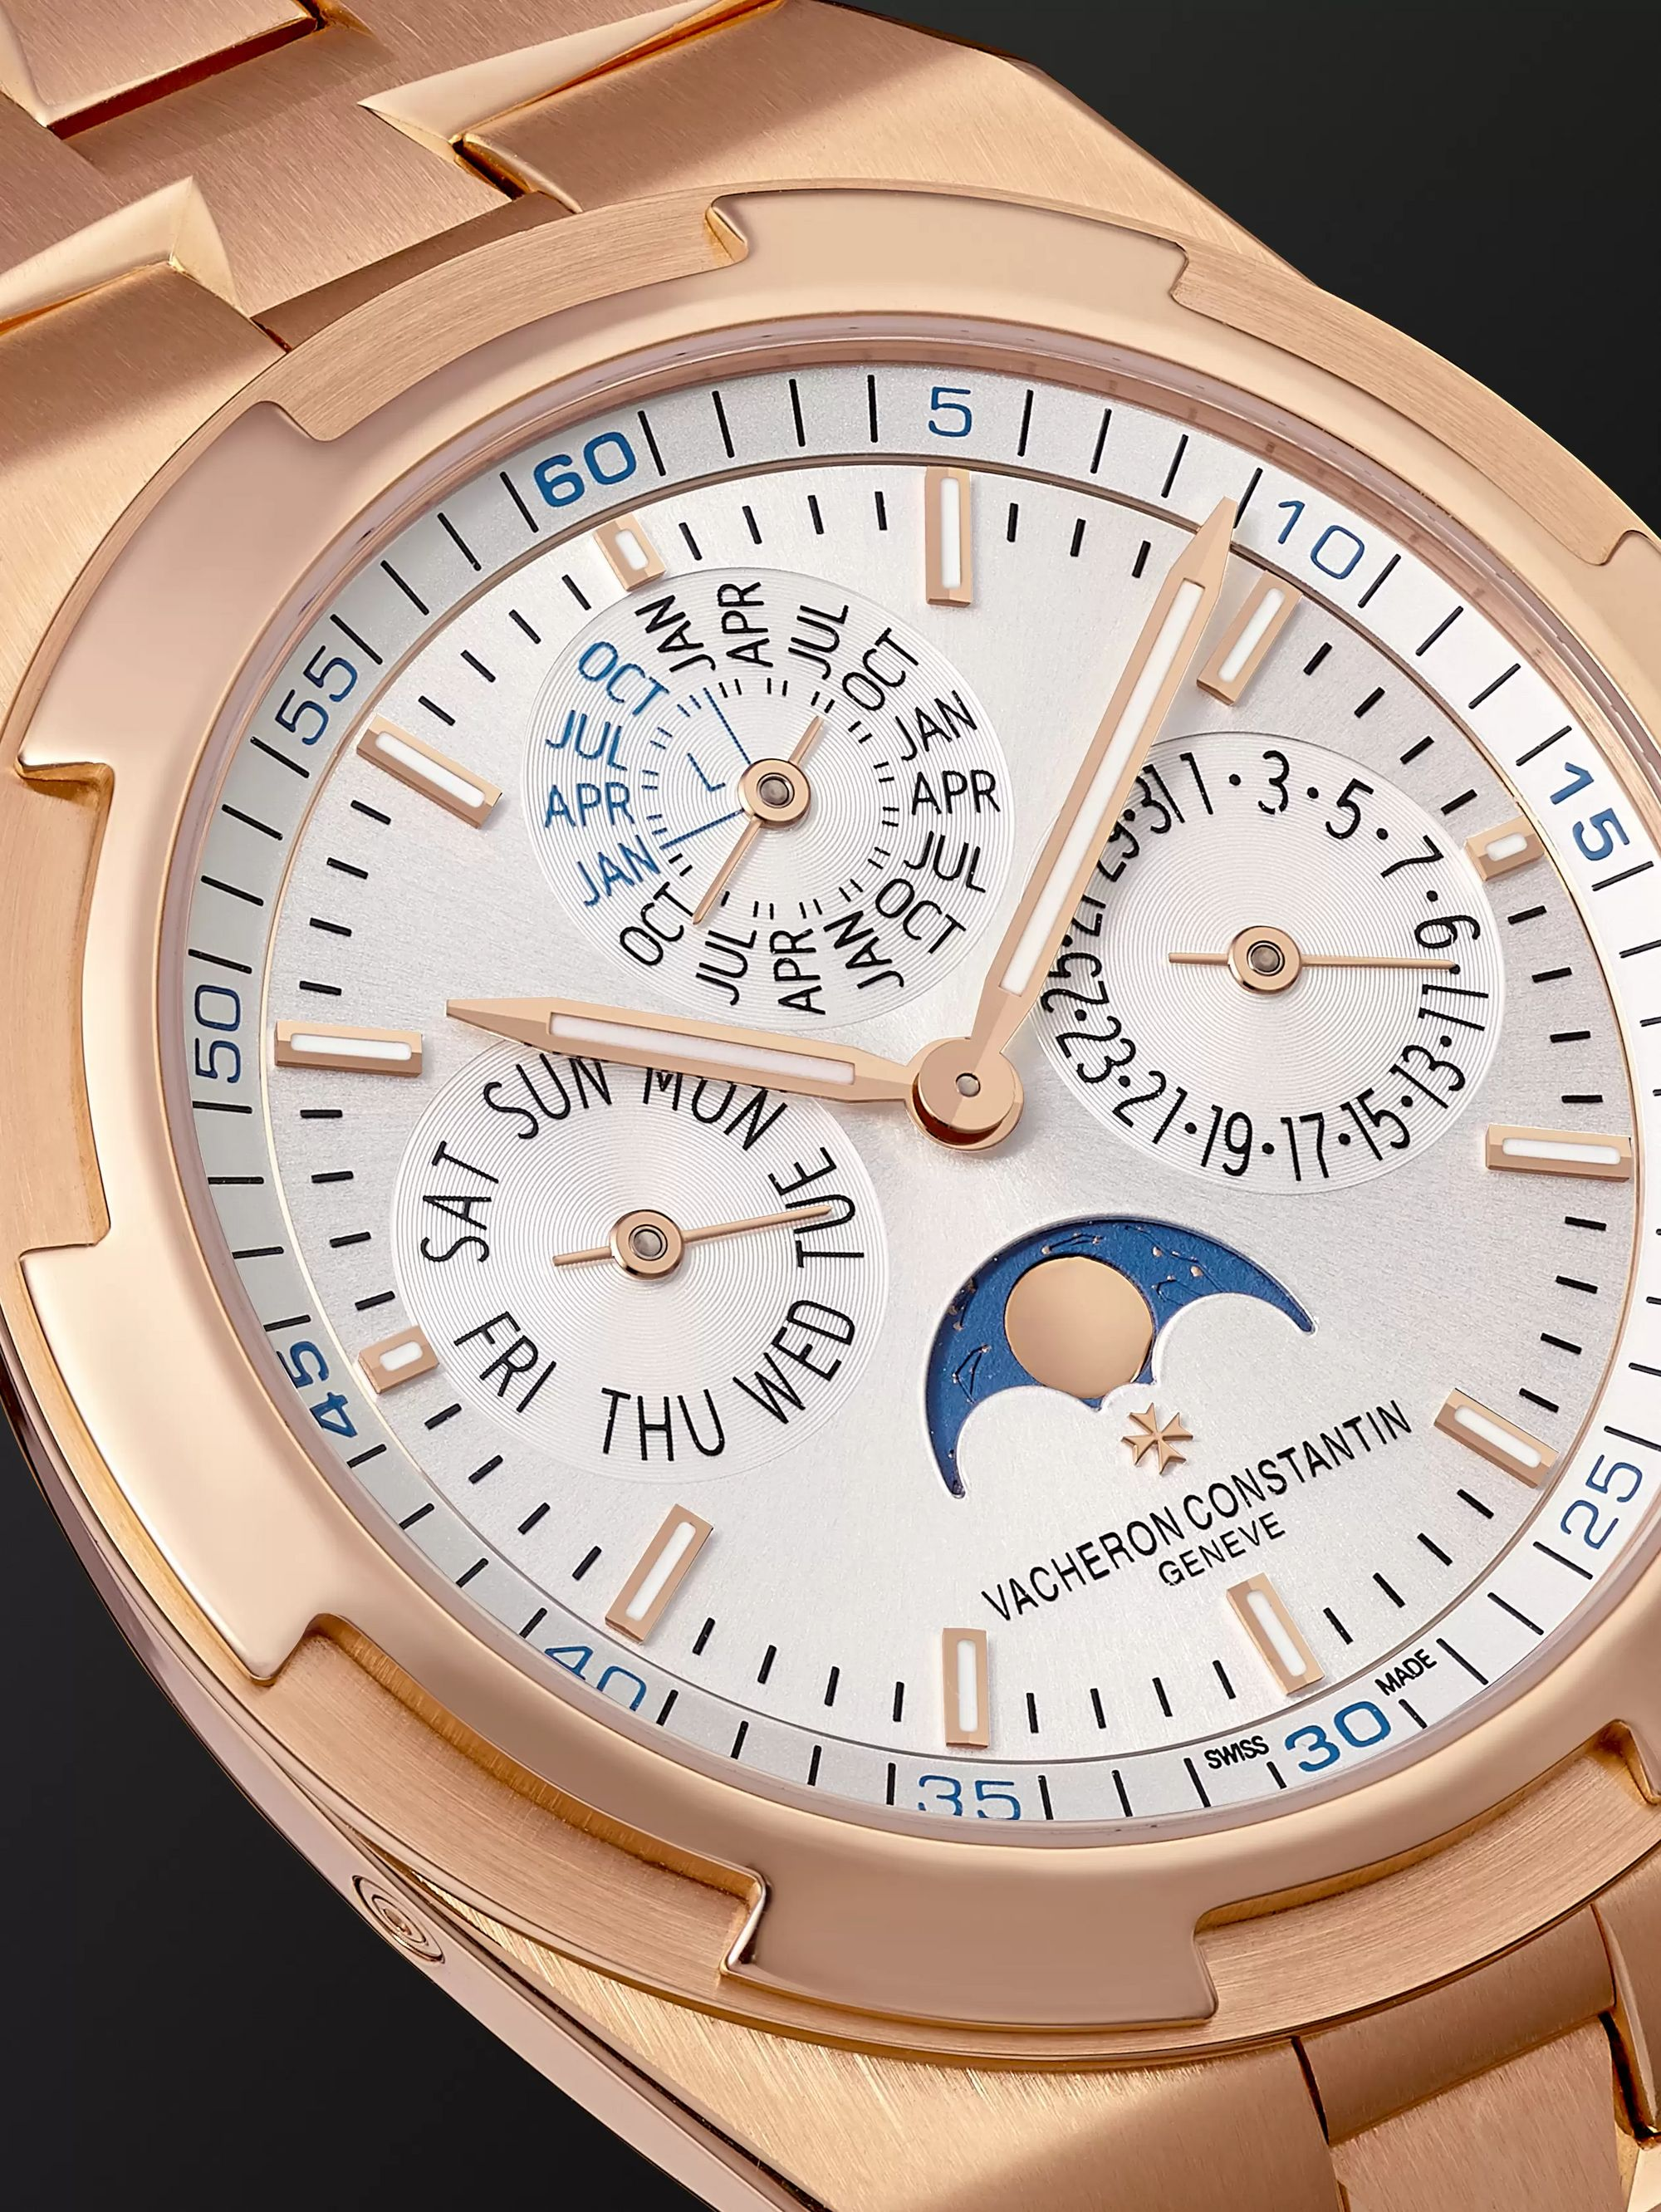 Vacheron Constantin Overseas Perpetual Calendar Automatic 41.5mm Ultra Slim 18-Karat Rose Gold Watch, Ref. No. 4300V/120R-B064